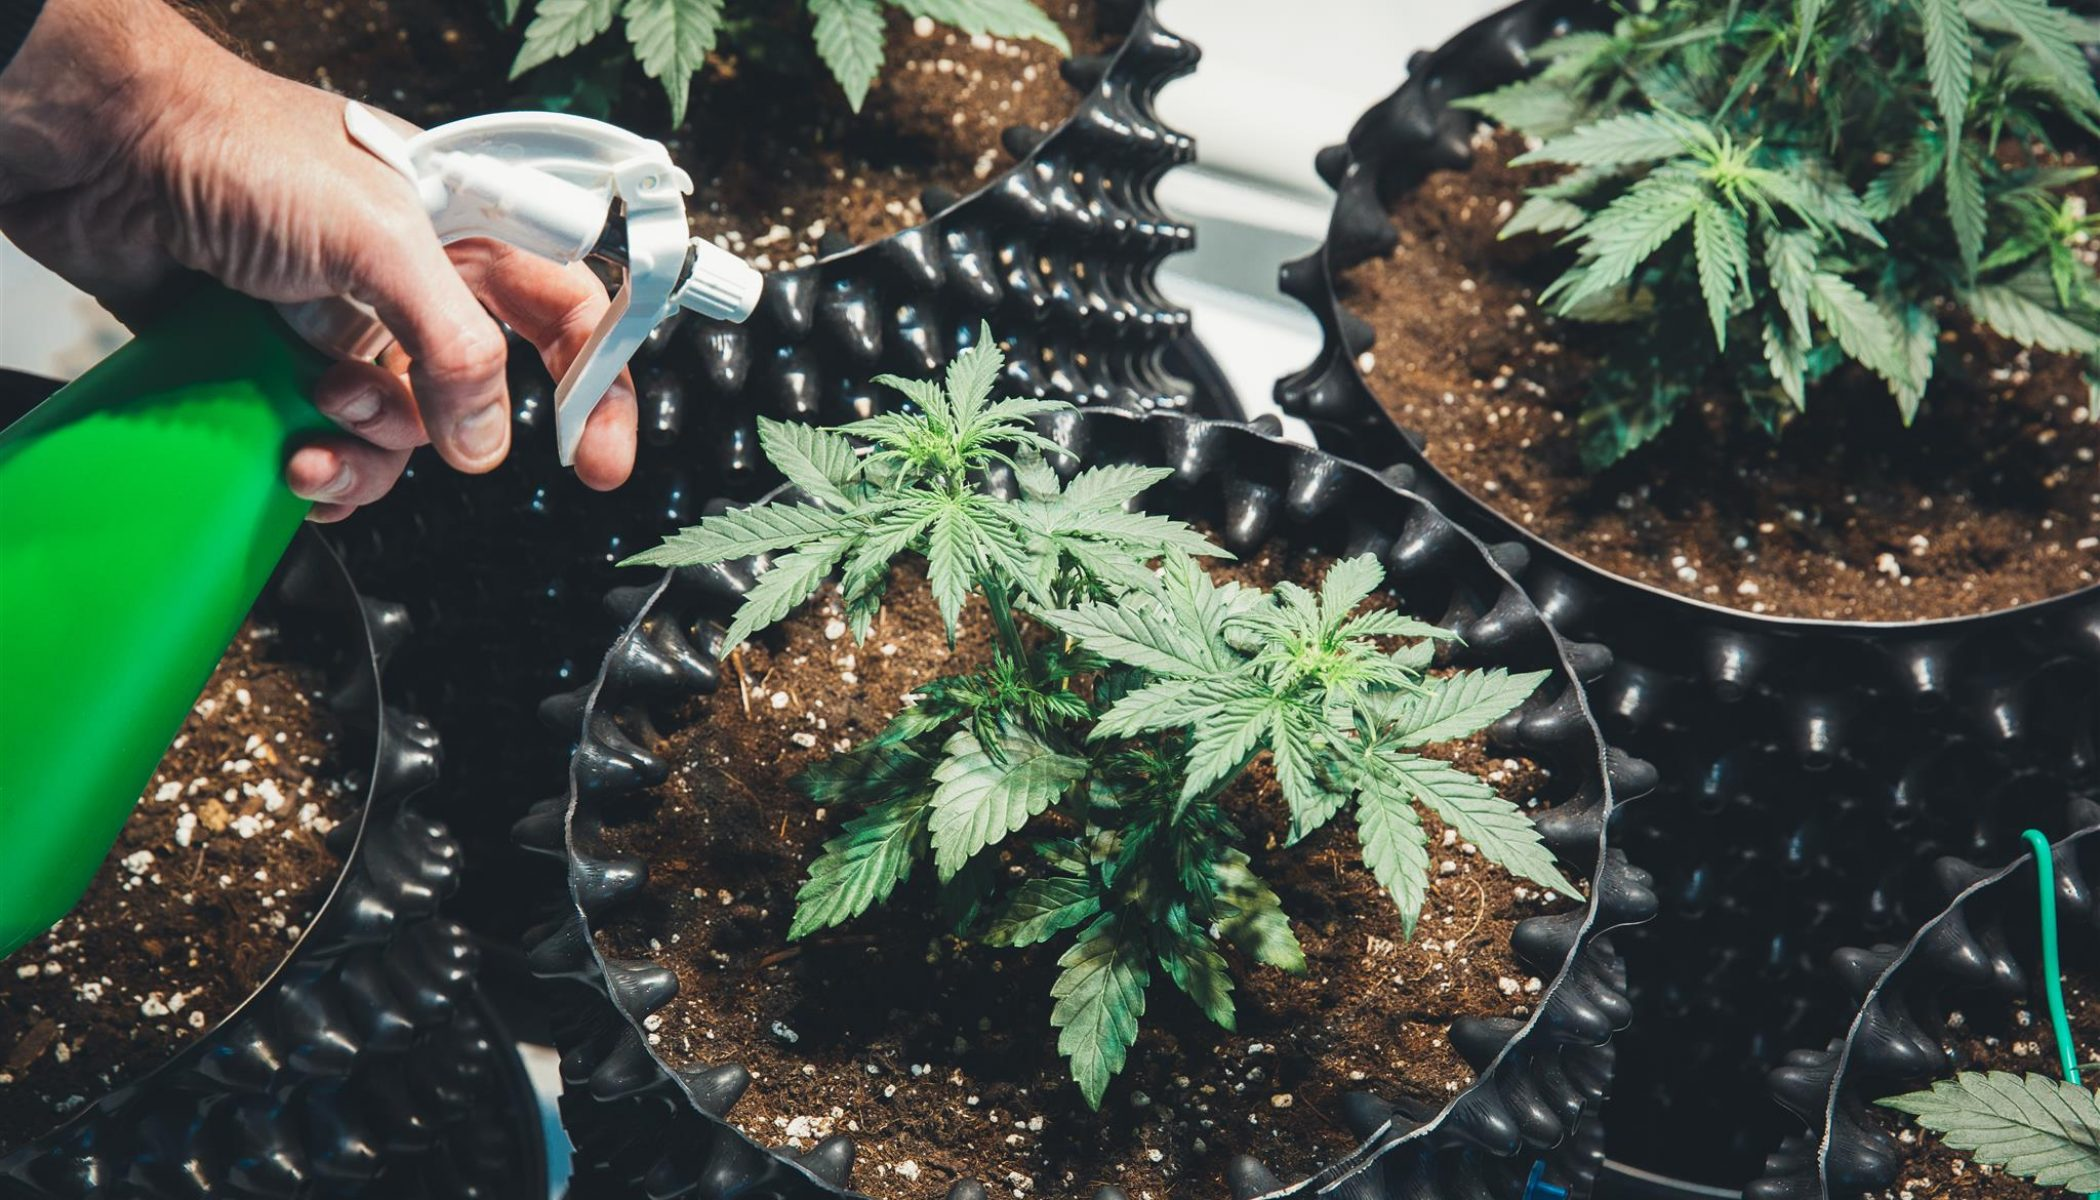 Tips To Grow Great-Tasting Marijuana